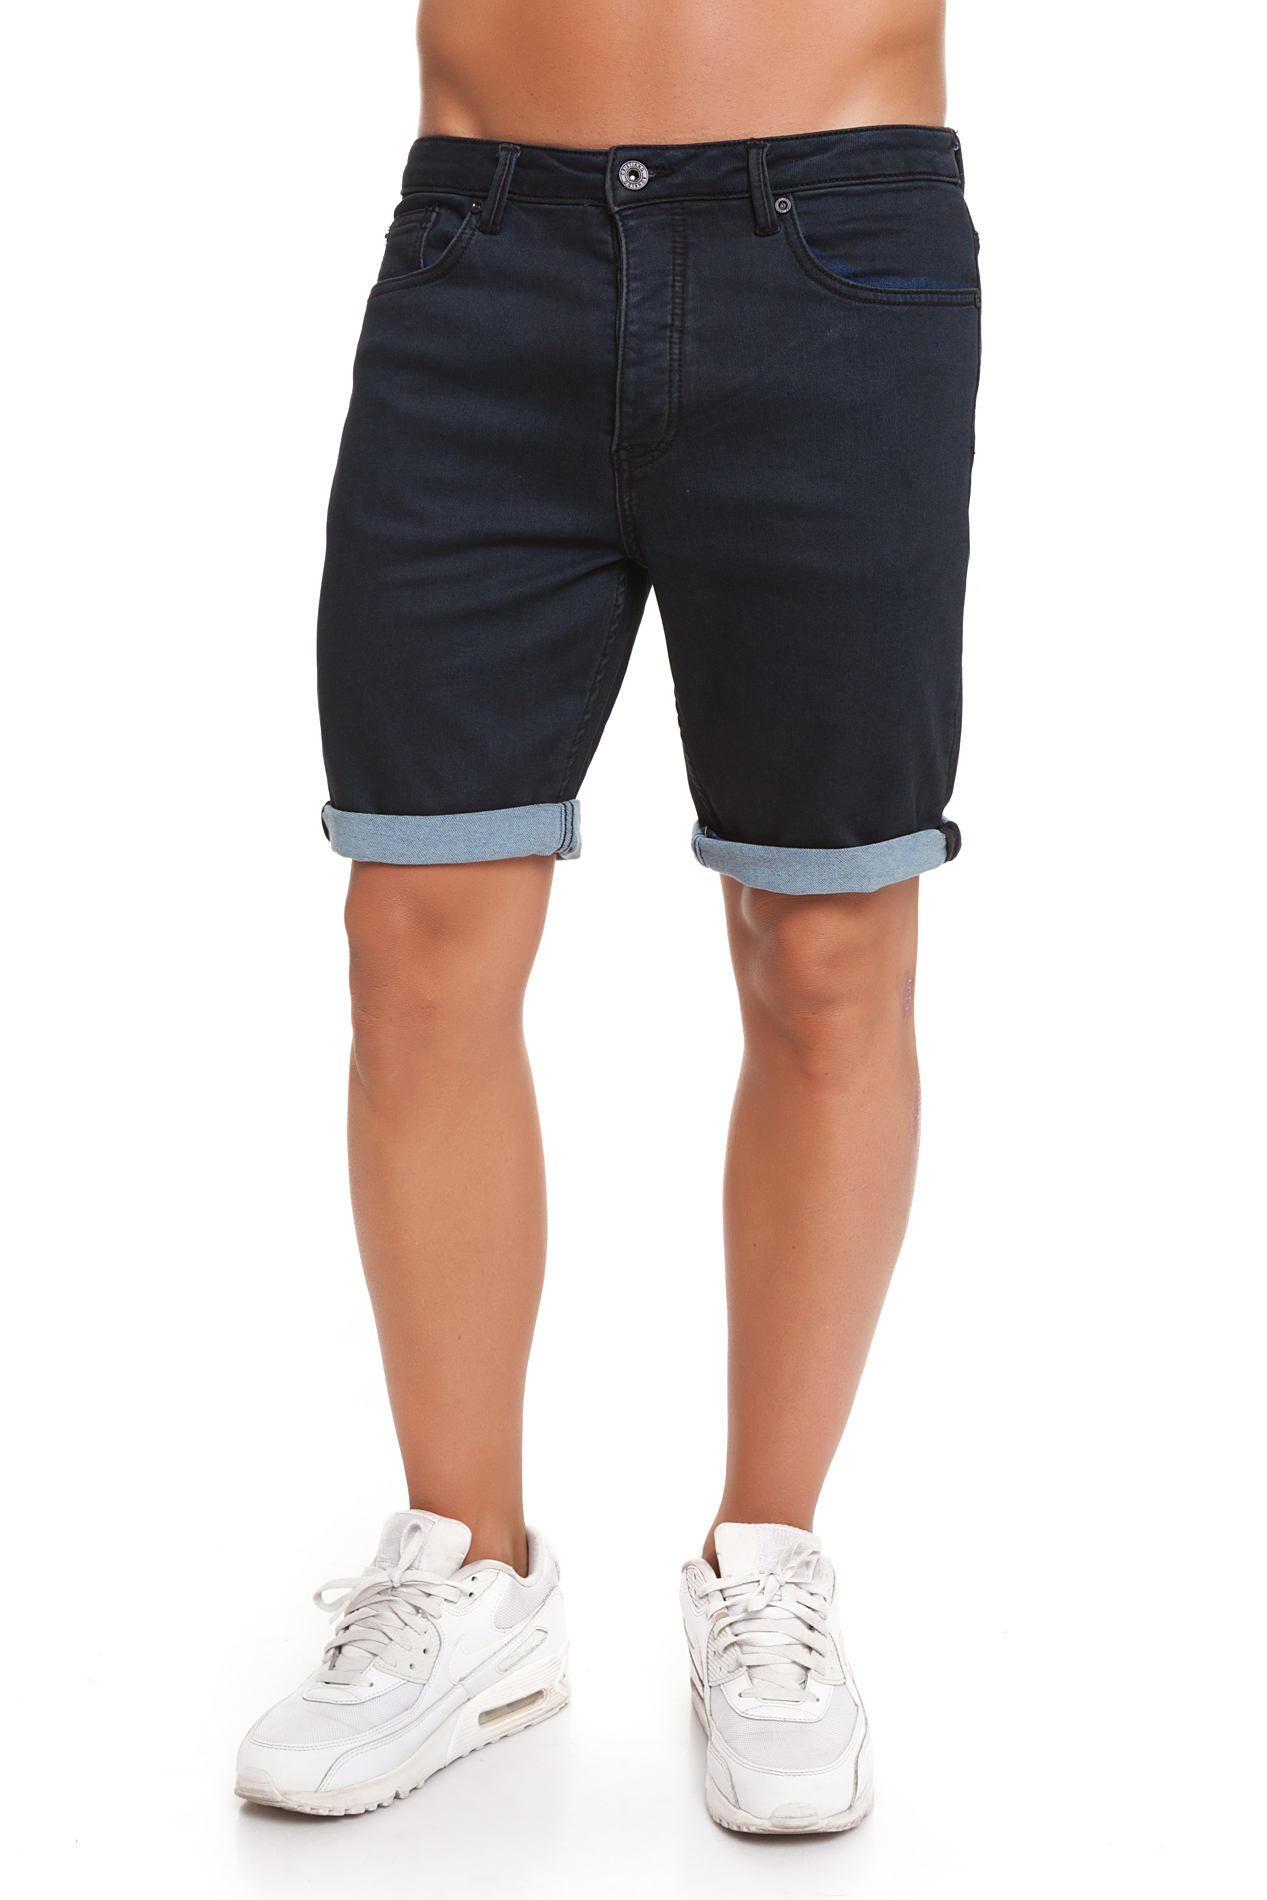 CR7 Trousers Short For Men Dark Blue Casual Causal Vaquros Short Short Wax CRD046B